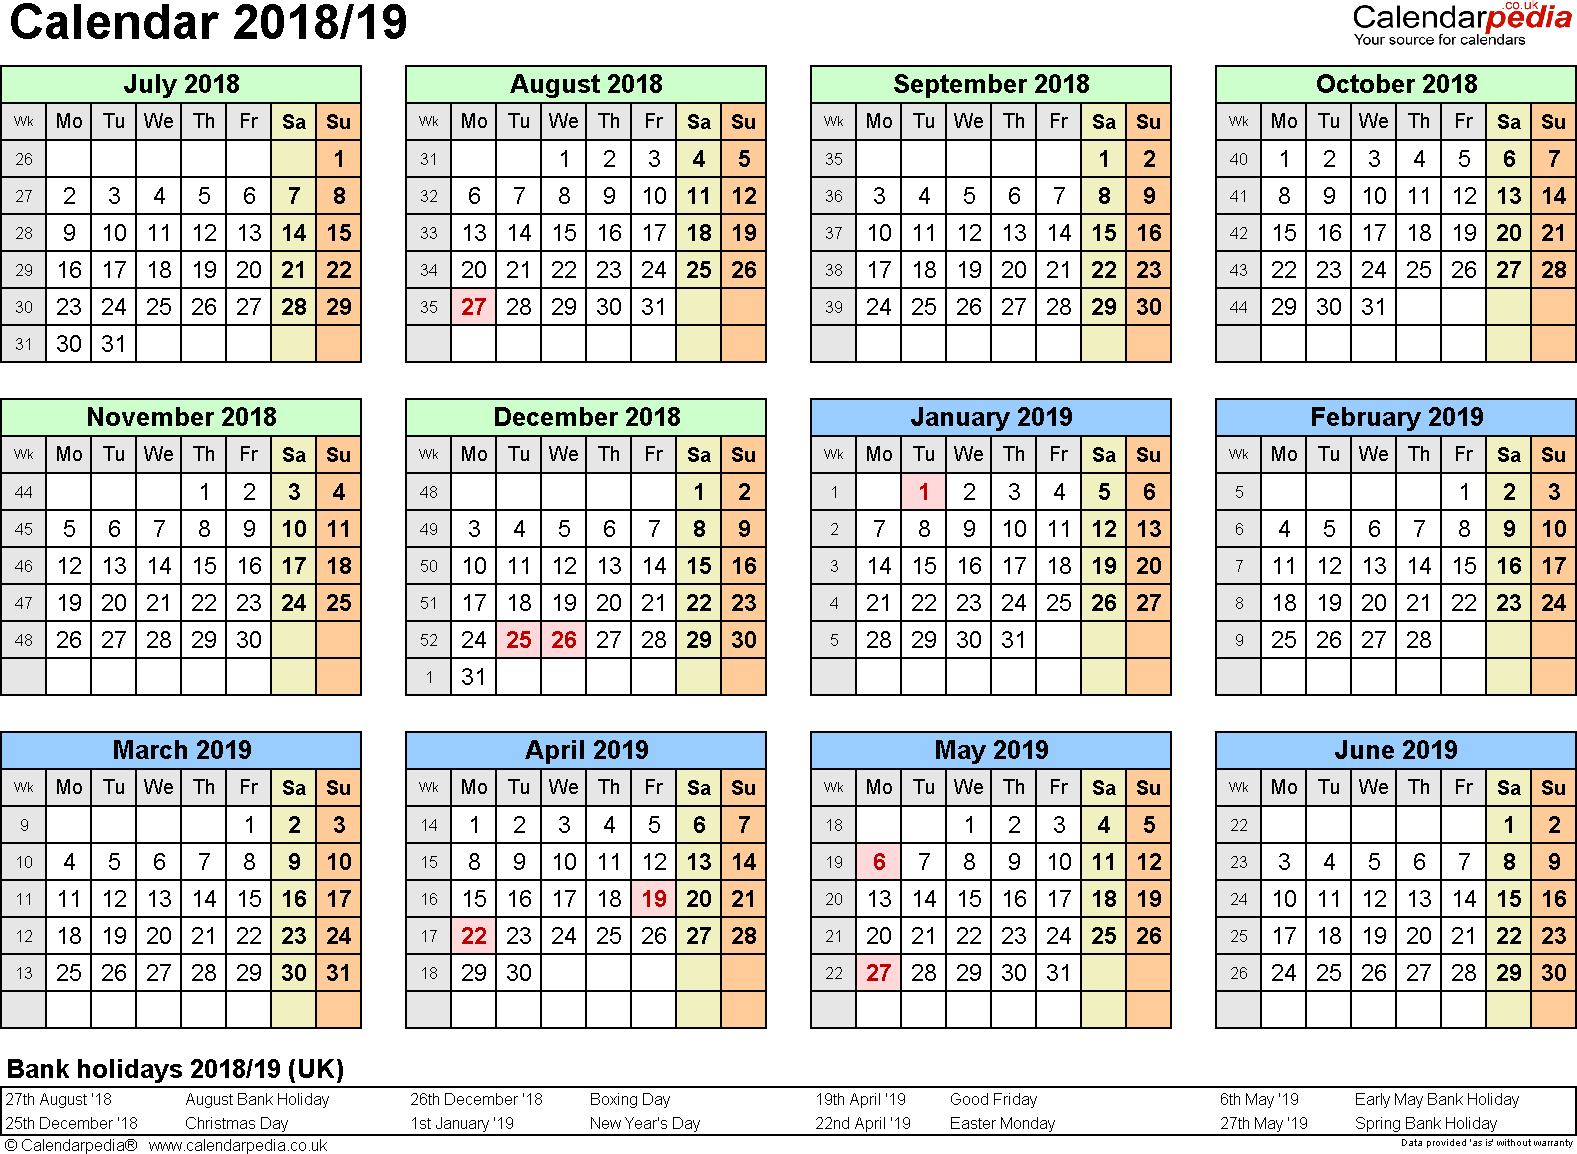 Split year calendars 2018/19 (July to June) for Word (UK